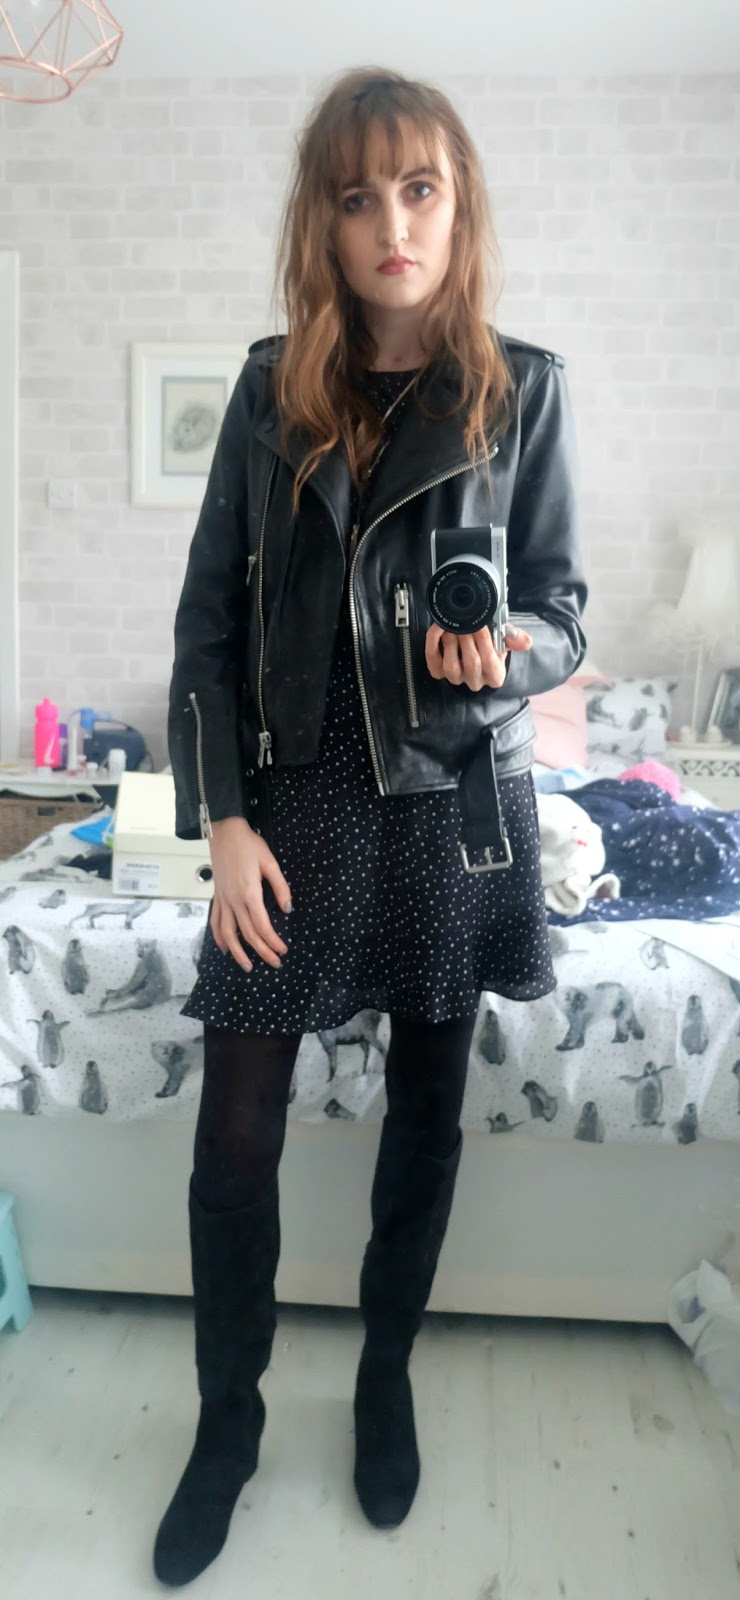 topshop navy star dress, balfern leather jacket, zara suedette over the knee boots,